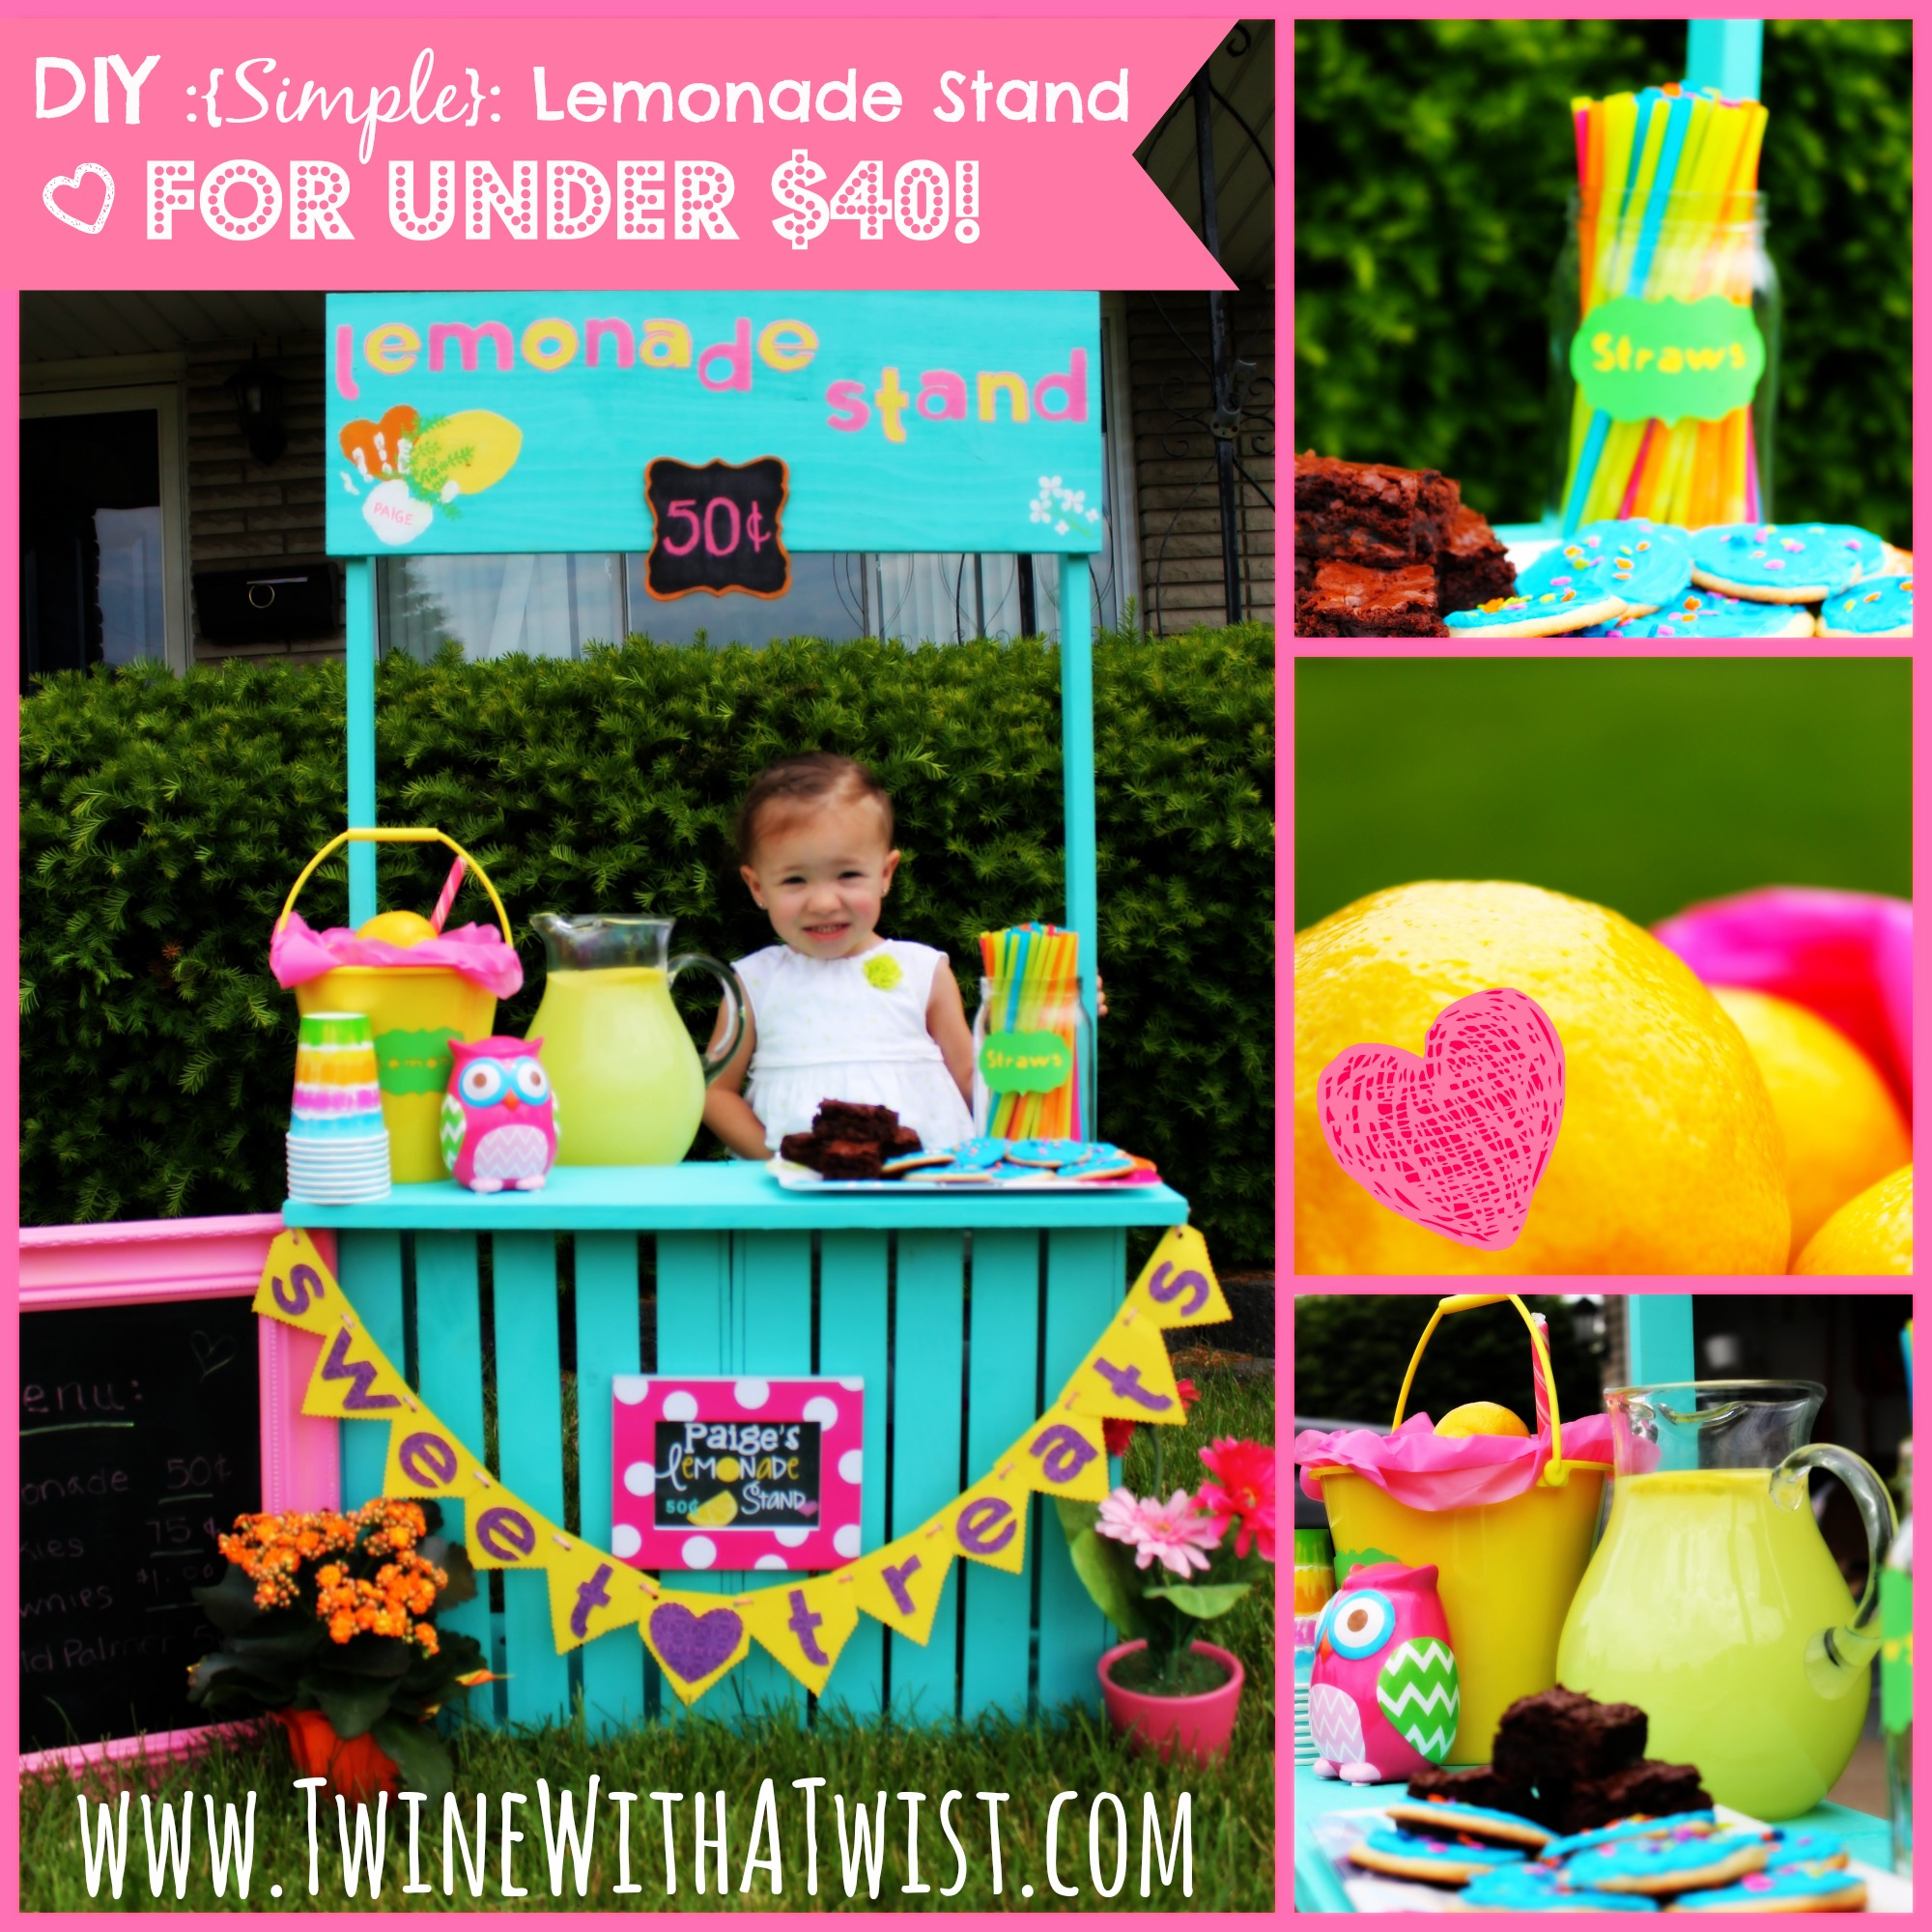 DIY Lemonade Stand.jpg